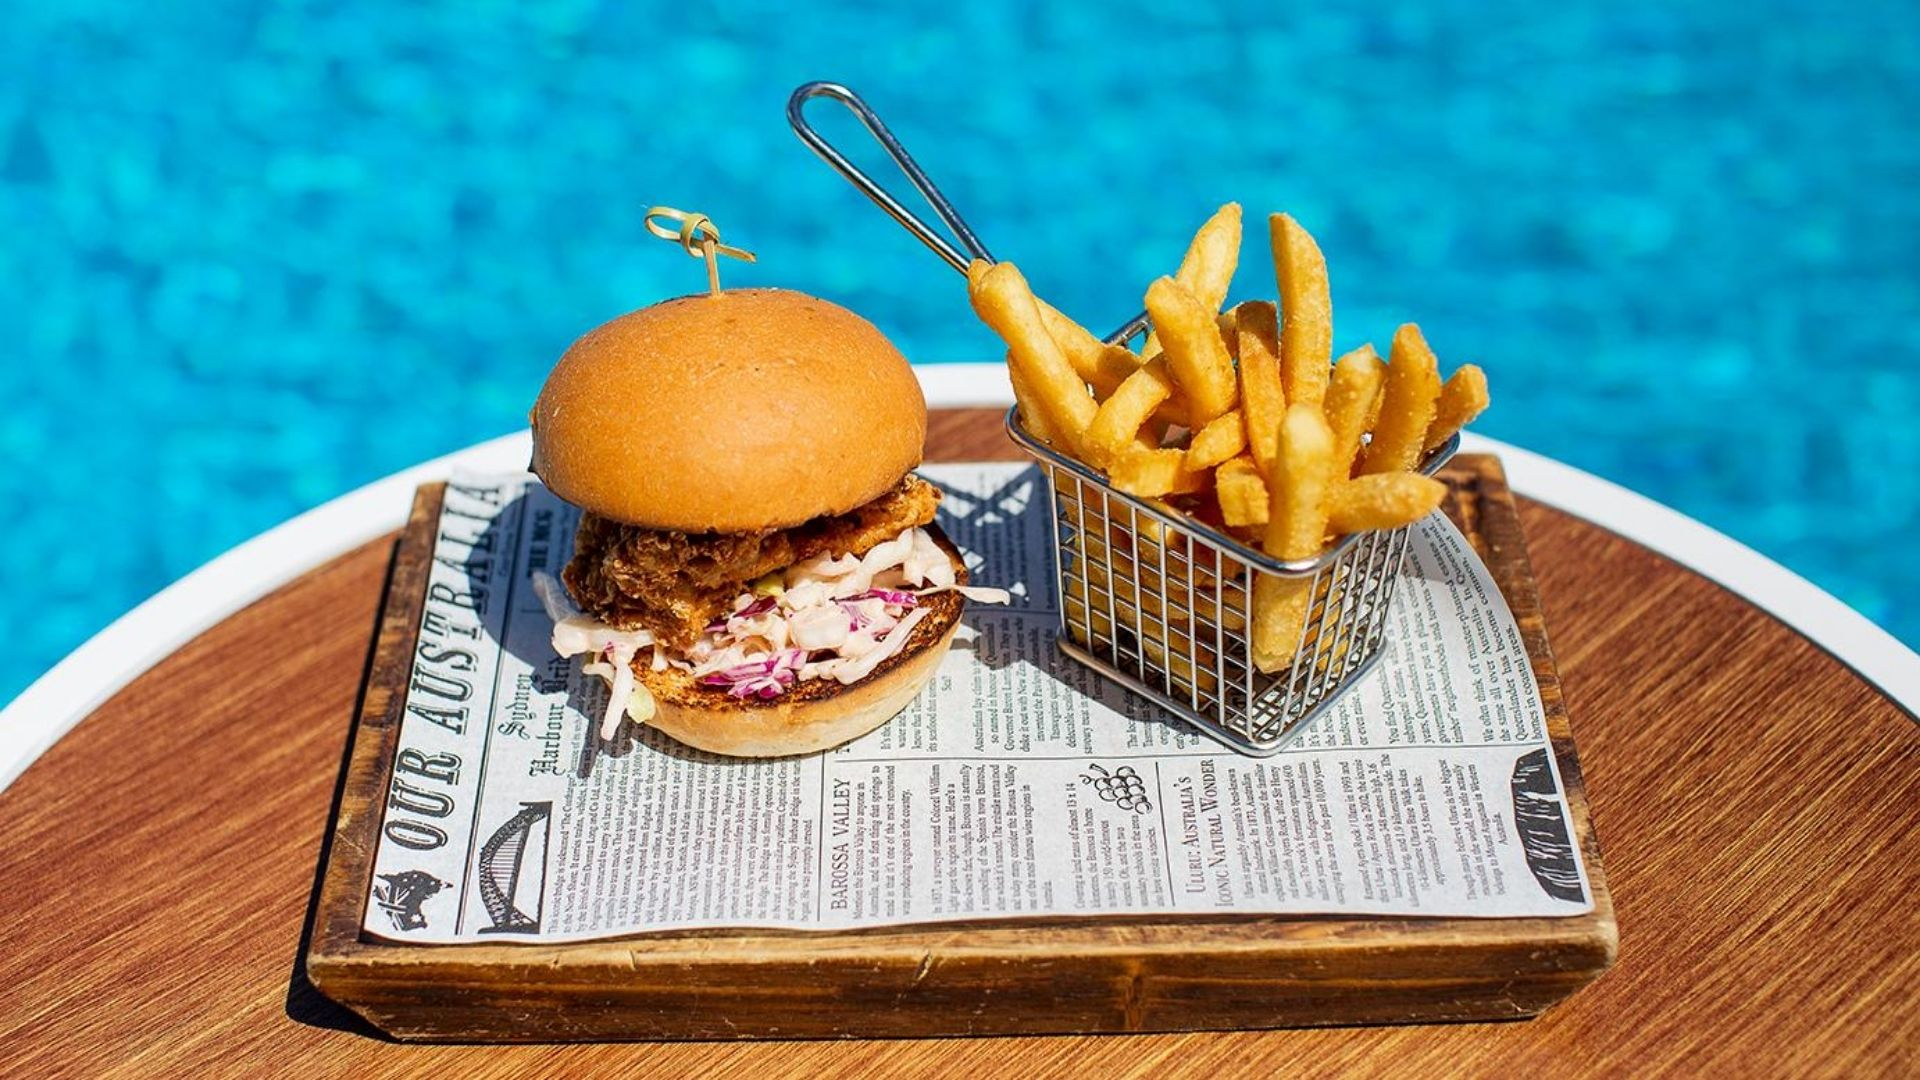 Chicken Burger from lunch menu at the Rocks